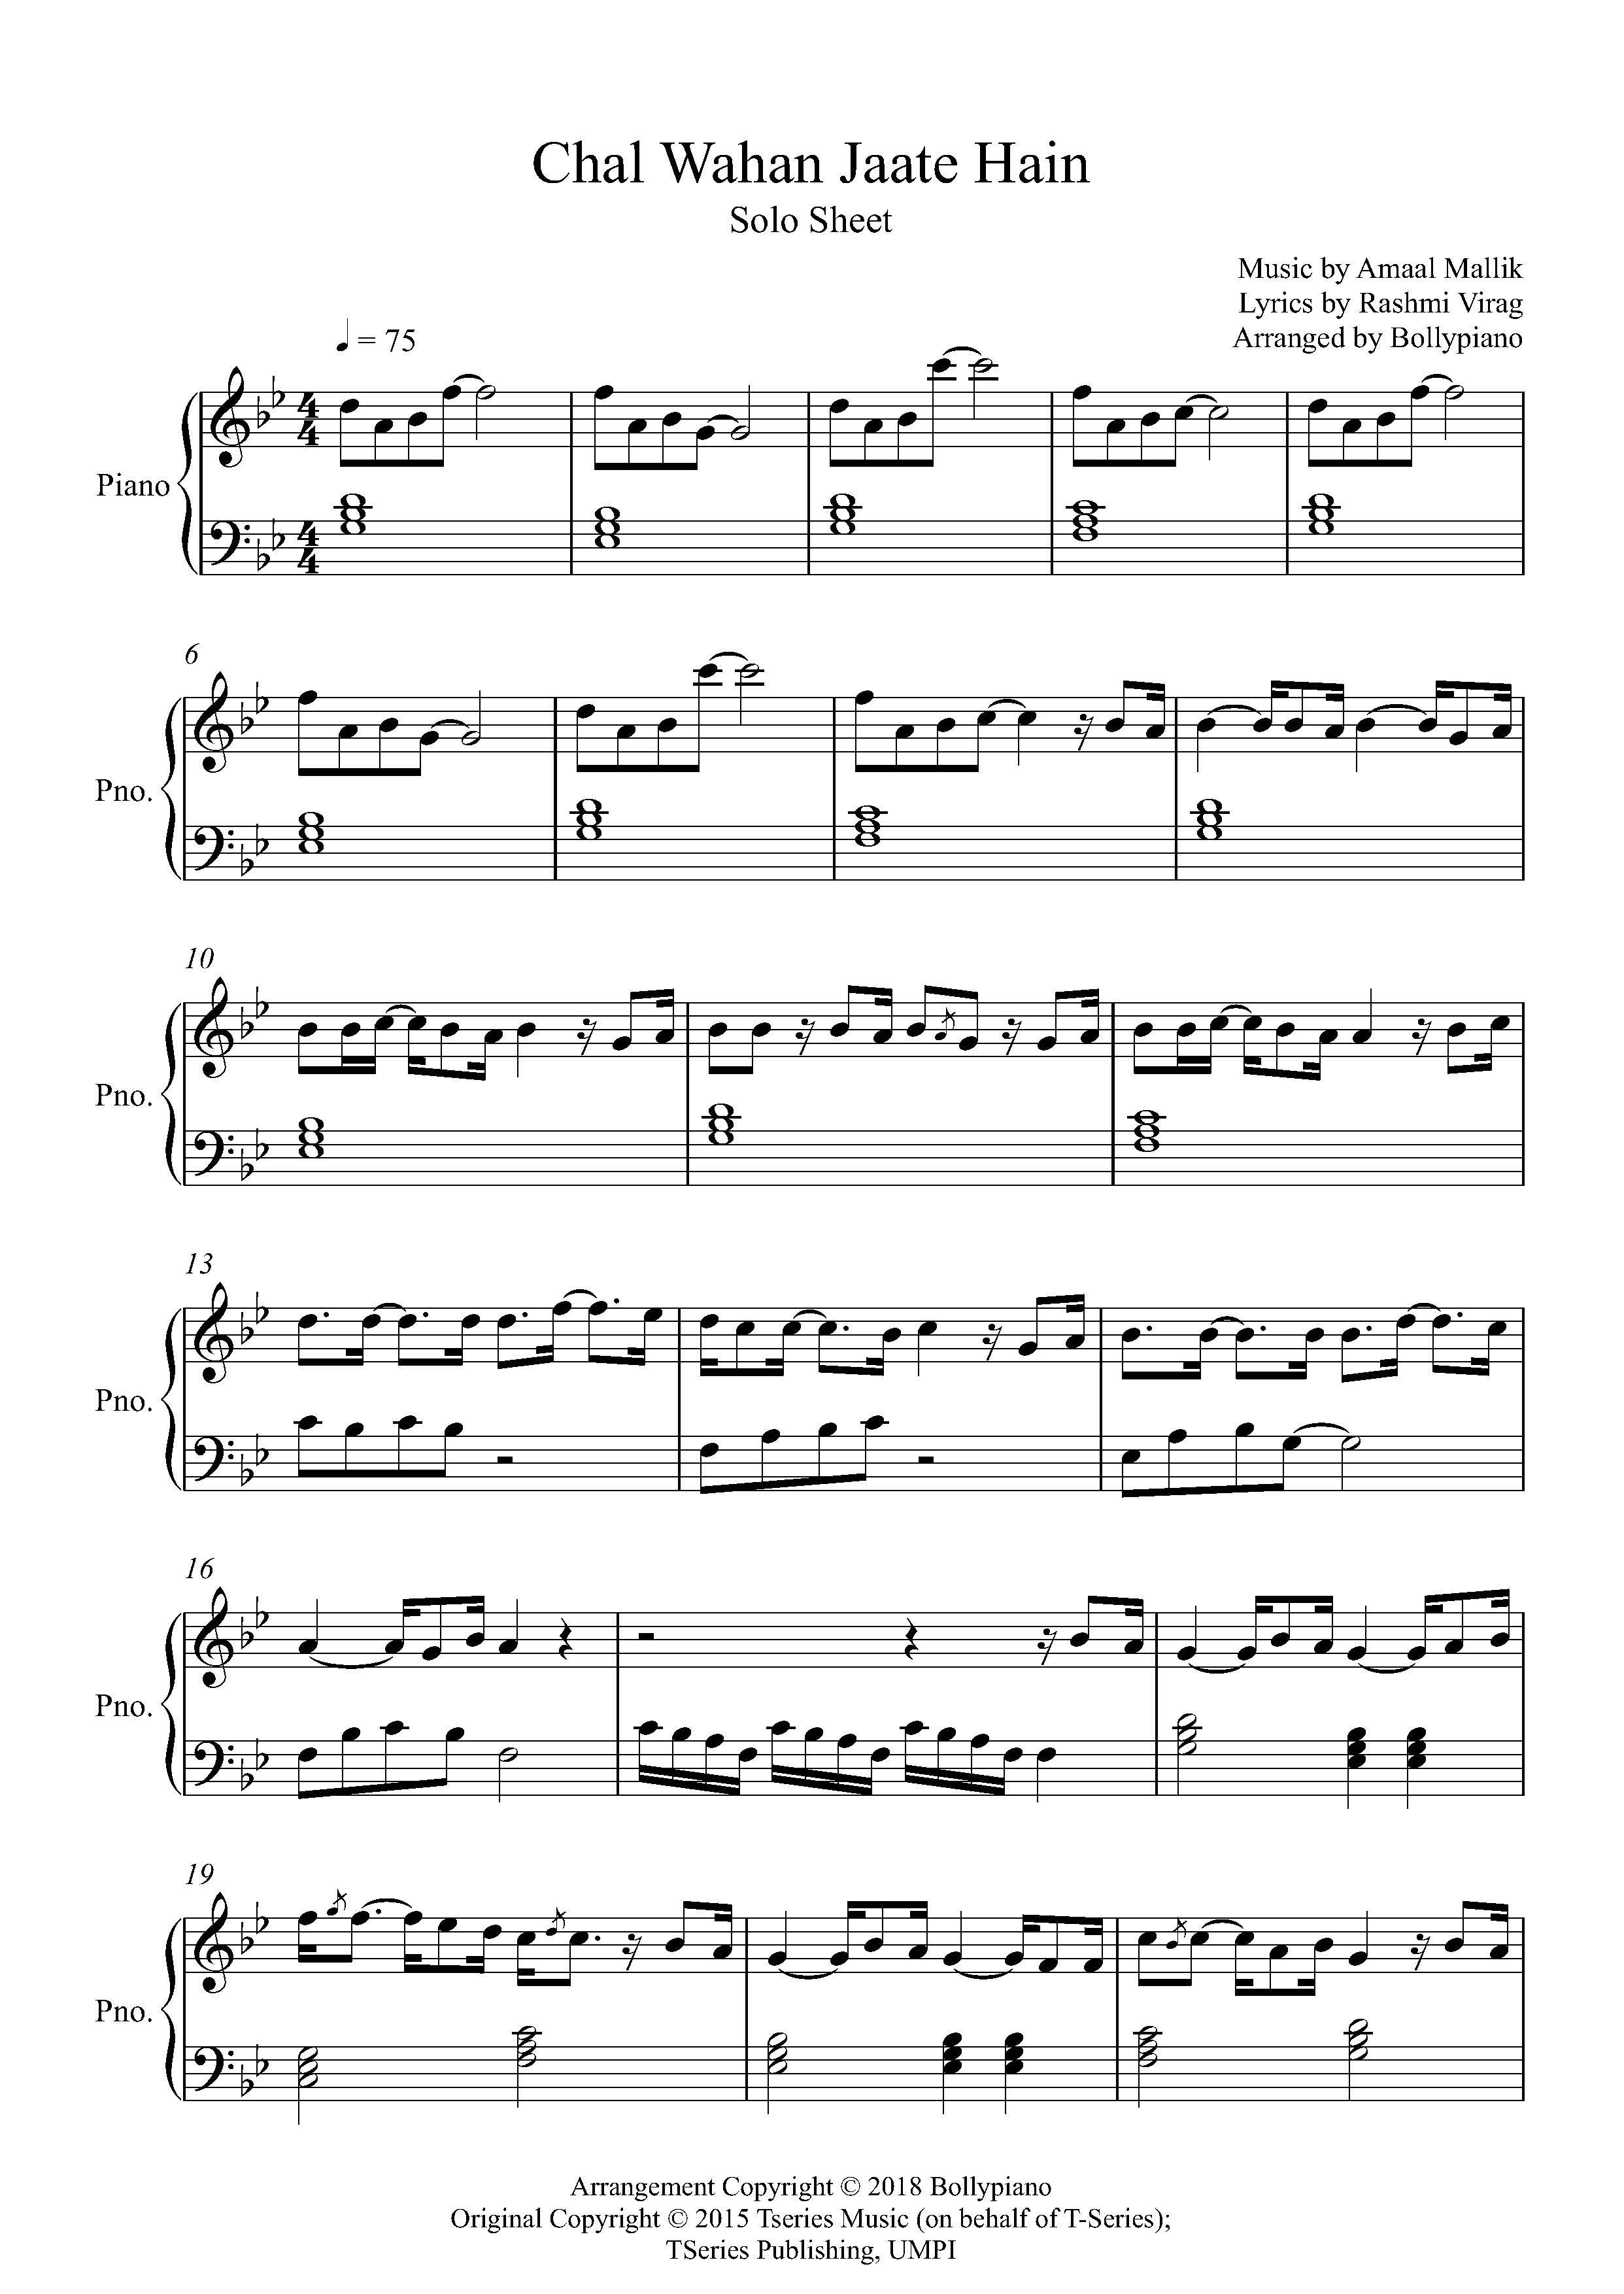 Chal Wahan Jaate Hain Piano Notes Piano Solo Sheet Music Pdf In